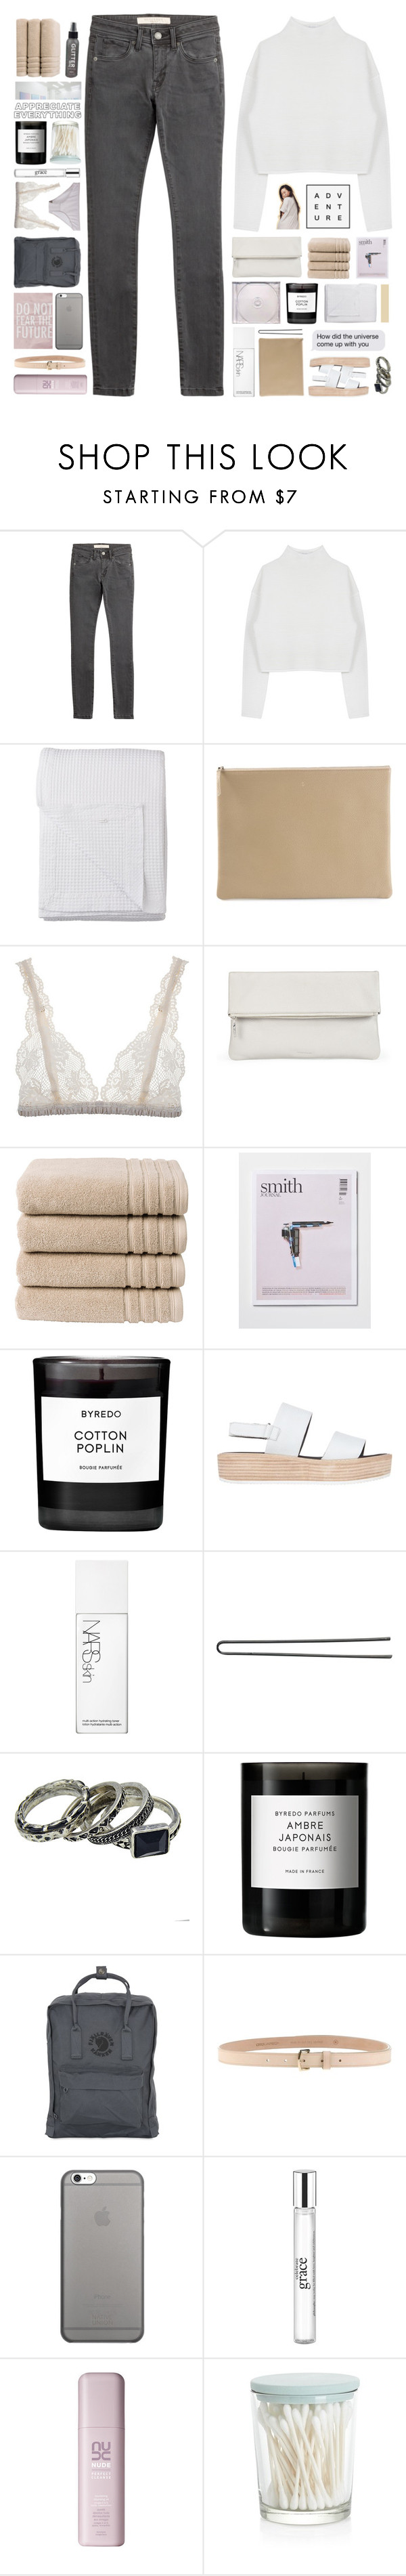 """""""☽ leave this blue neighbourhood, never knew loving could hurt this good ☾"""" by end-of-the-day ❤ liked on Polyvore featuring Burberry, Dion Lee, Lene Bjerre, Arts & Science, Lonely, Whistles, Christy, Byredo, Tony Bianco and NARS Cosmetics"""